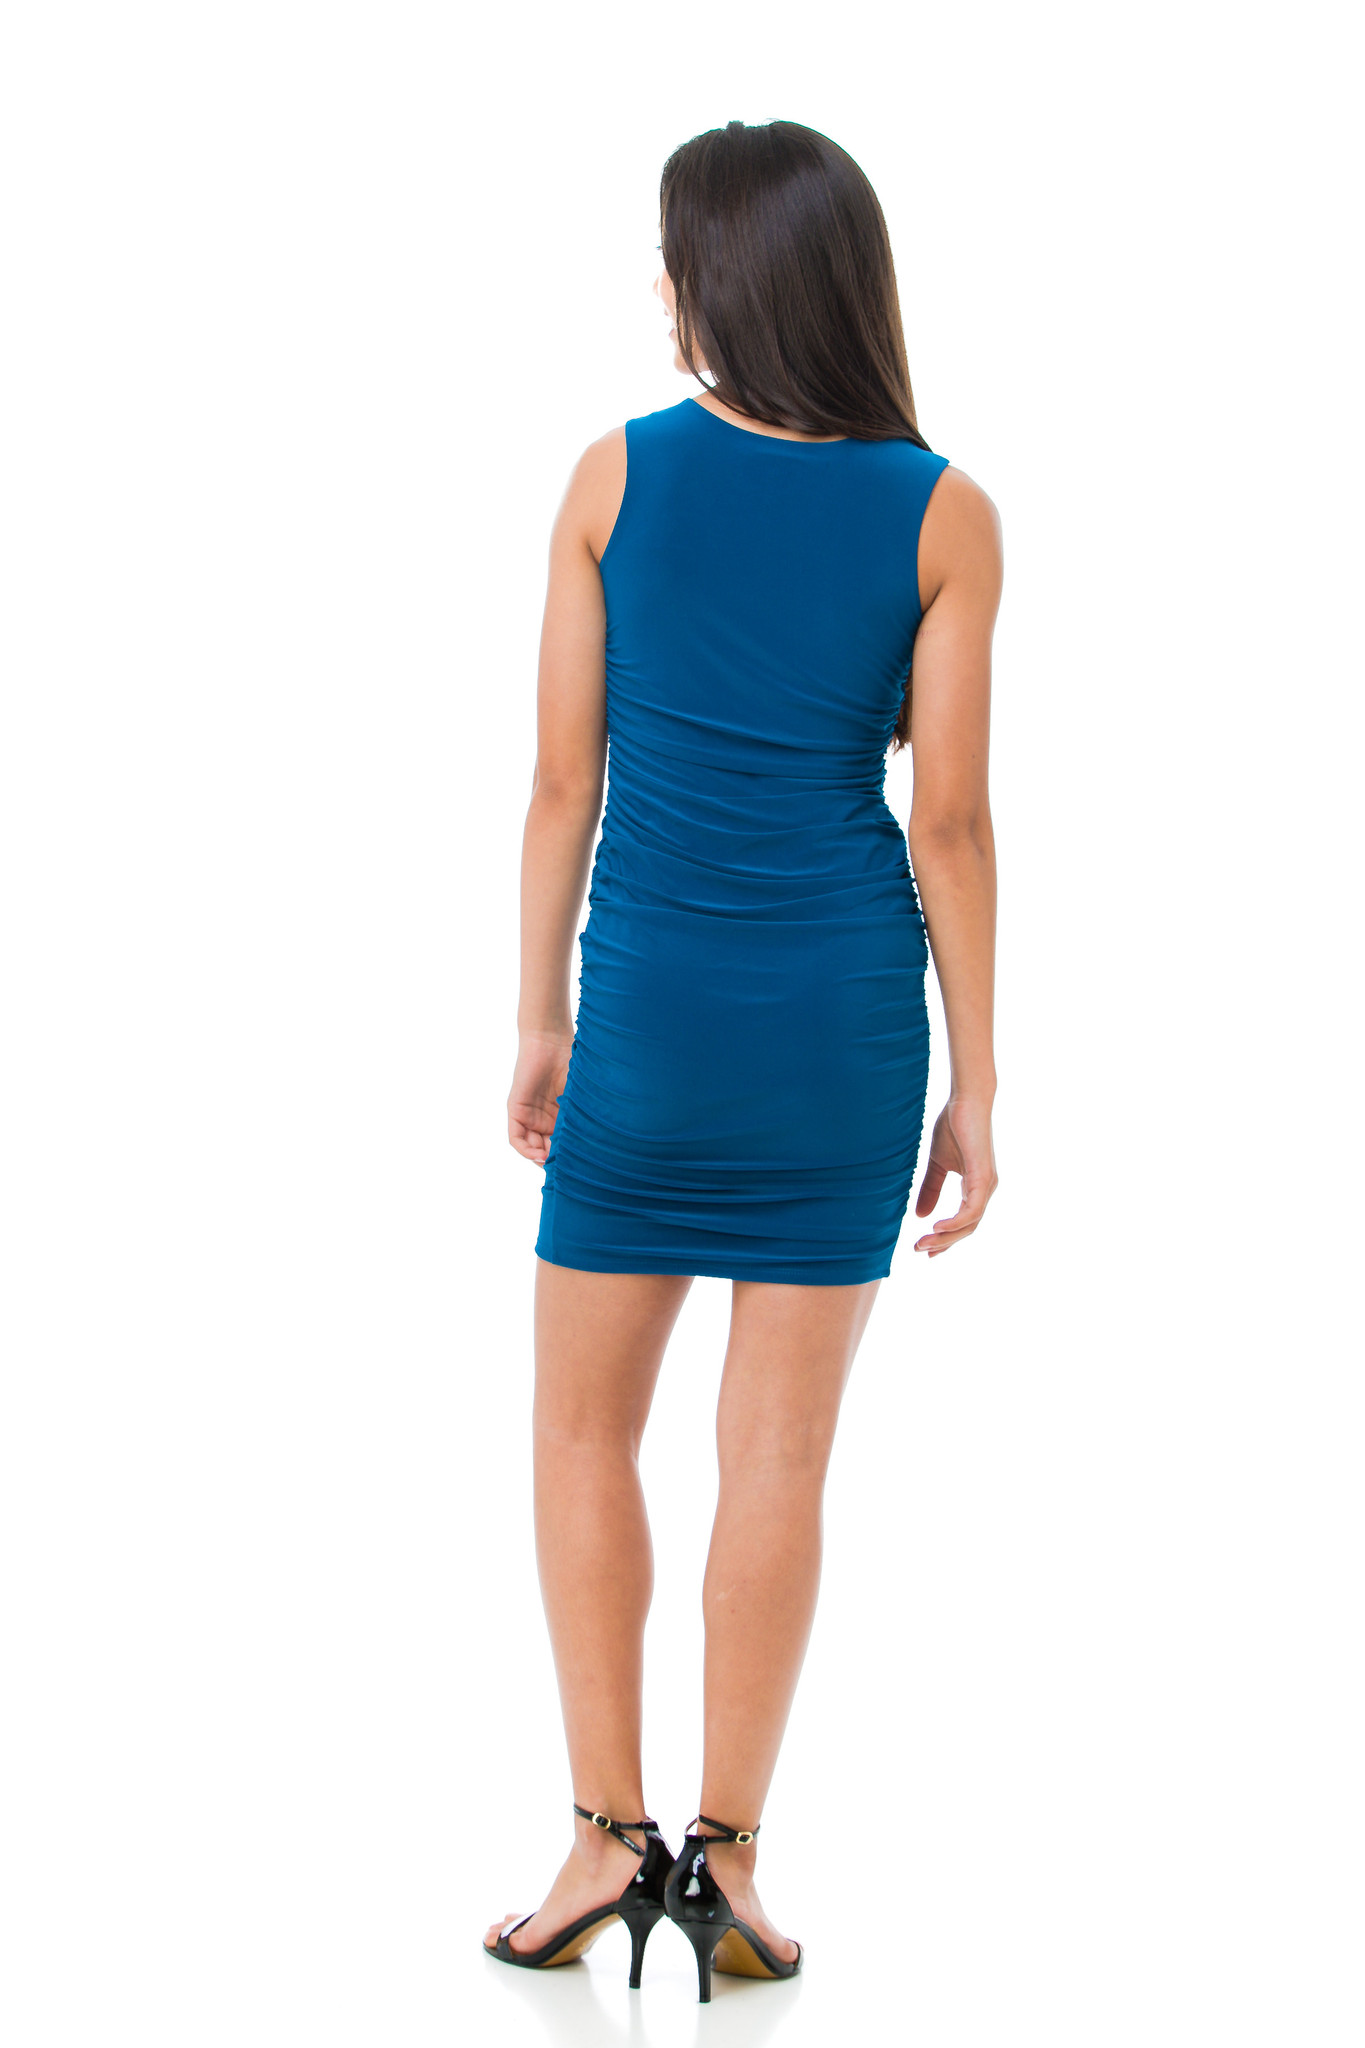 Back view of the Tween Girls Teal Ruched Fitted Dress in Longer Length.